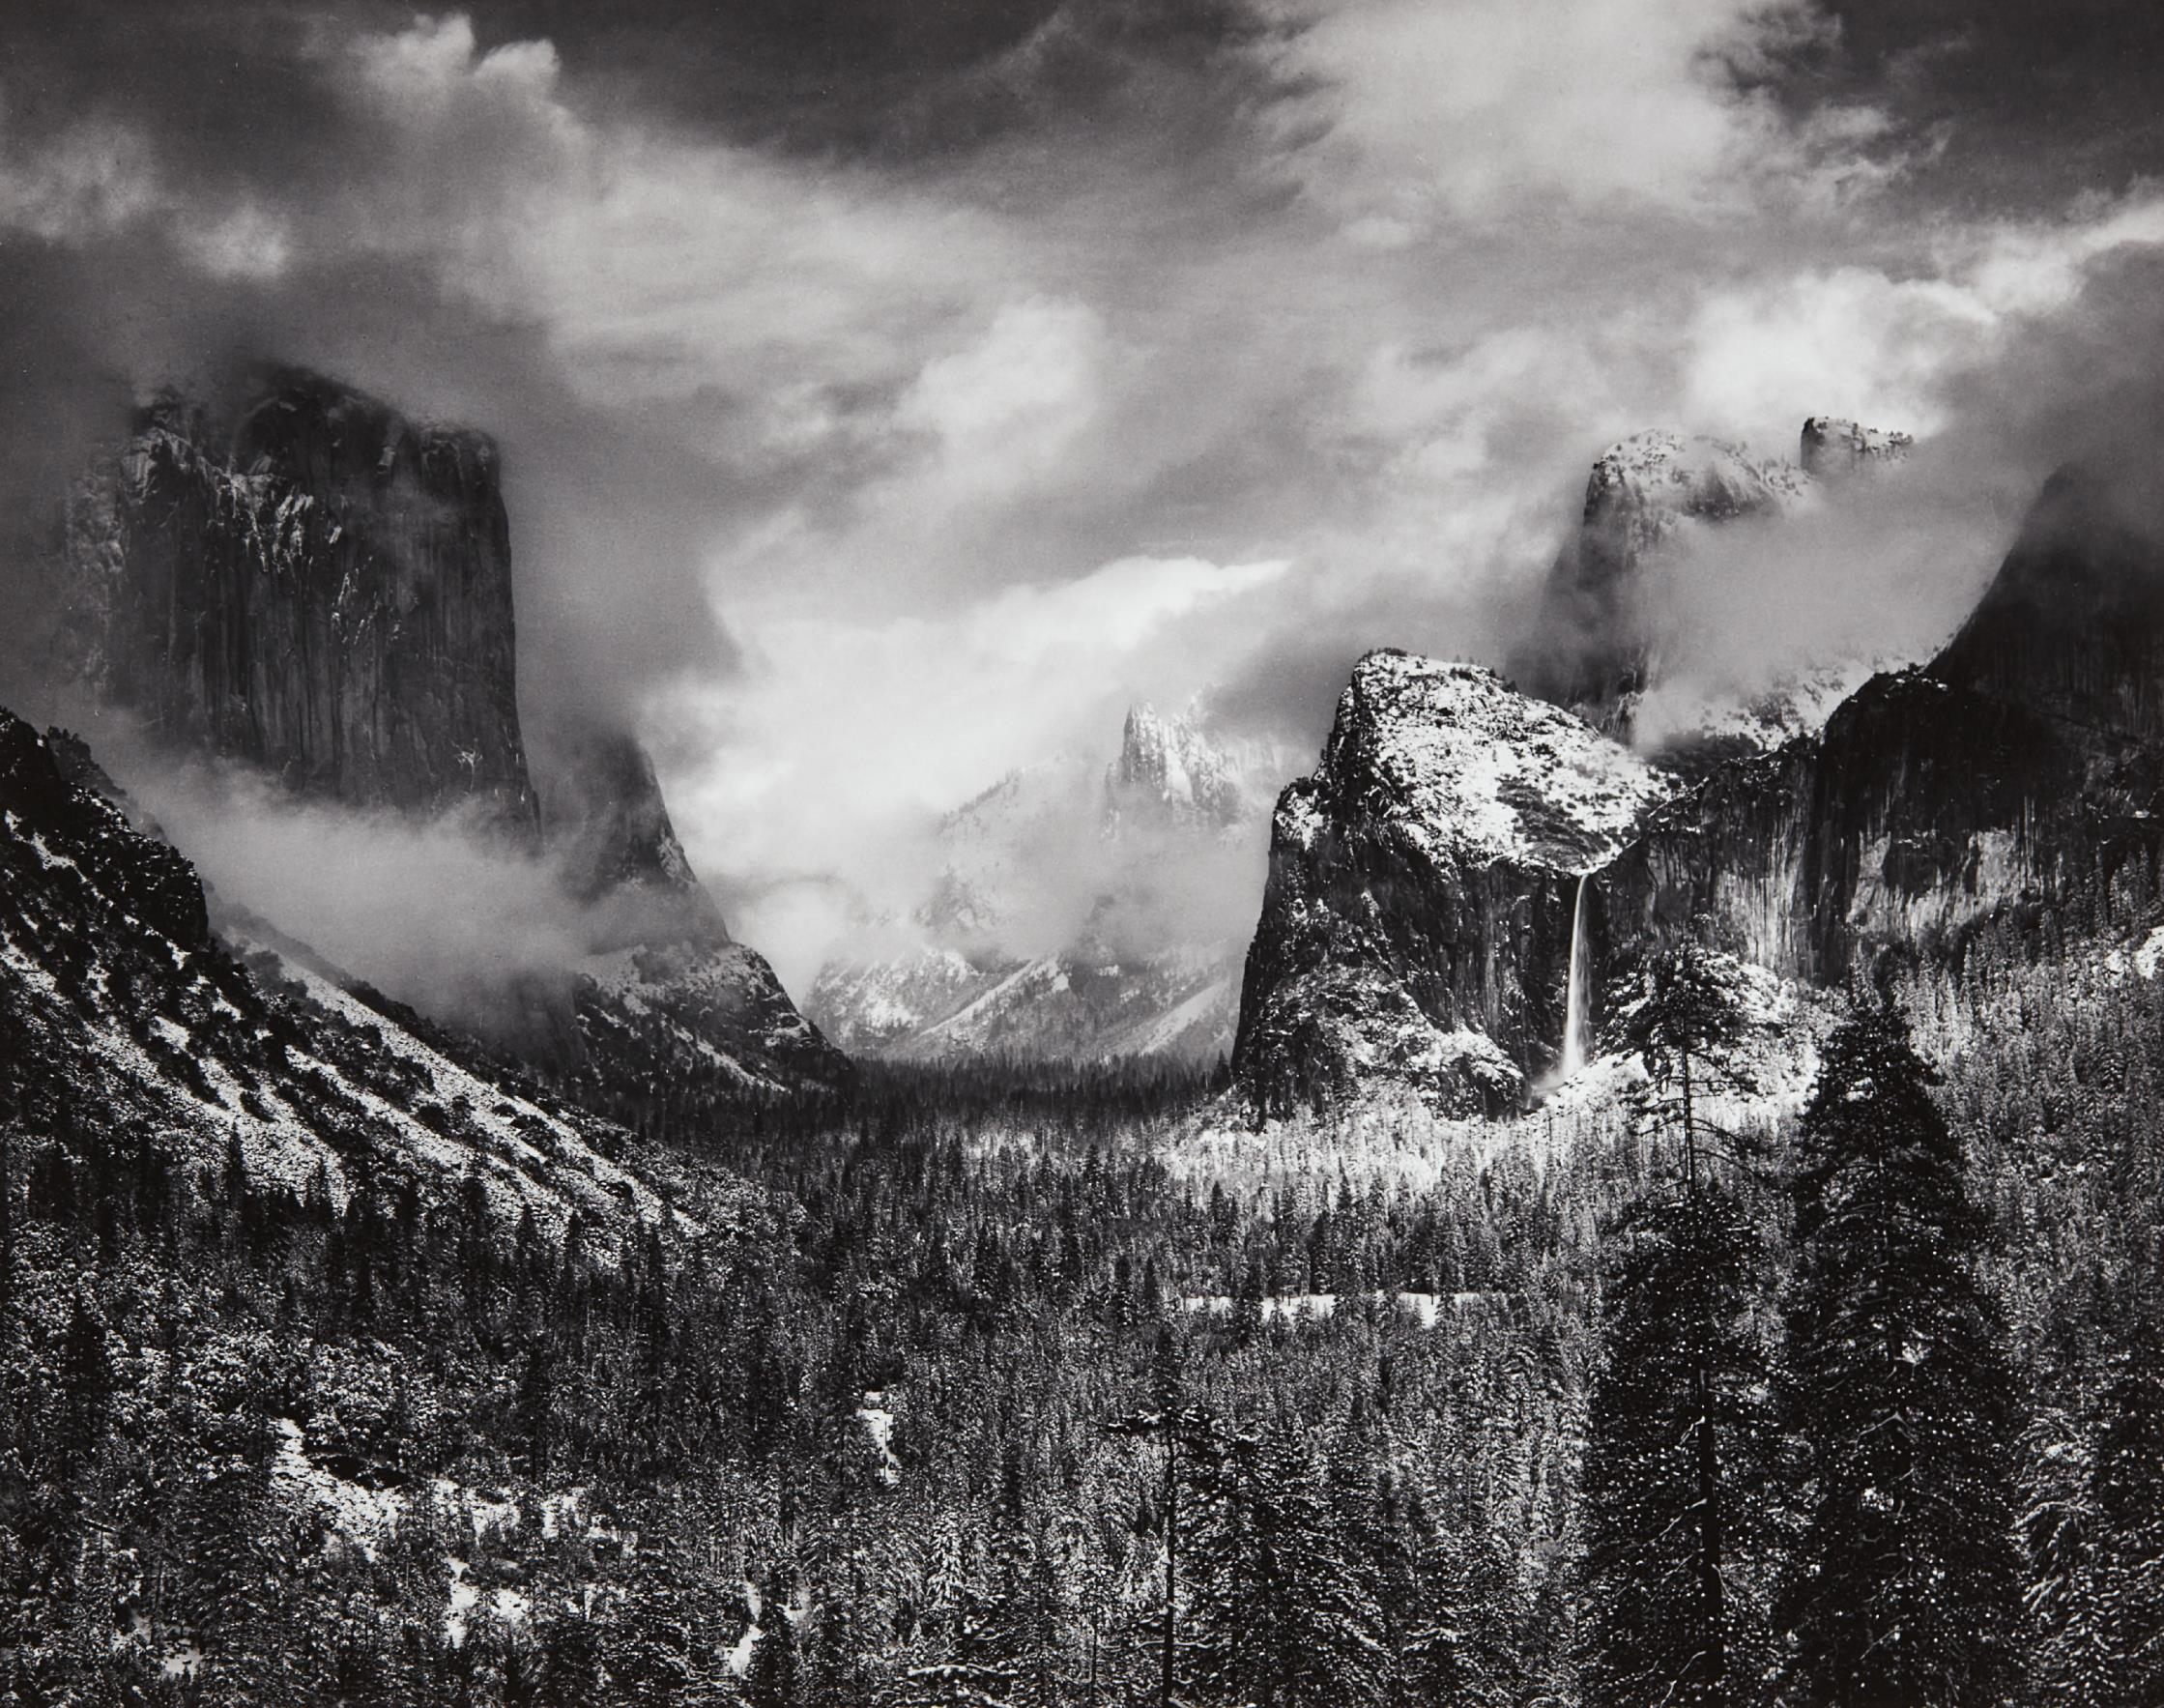 Ansel Adams-Clearing Winter Storm, Yosemite National Park, California-1944